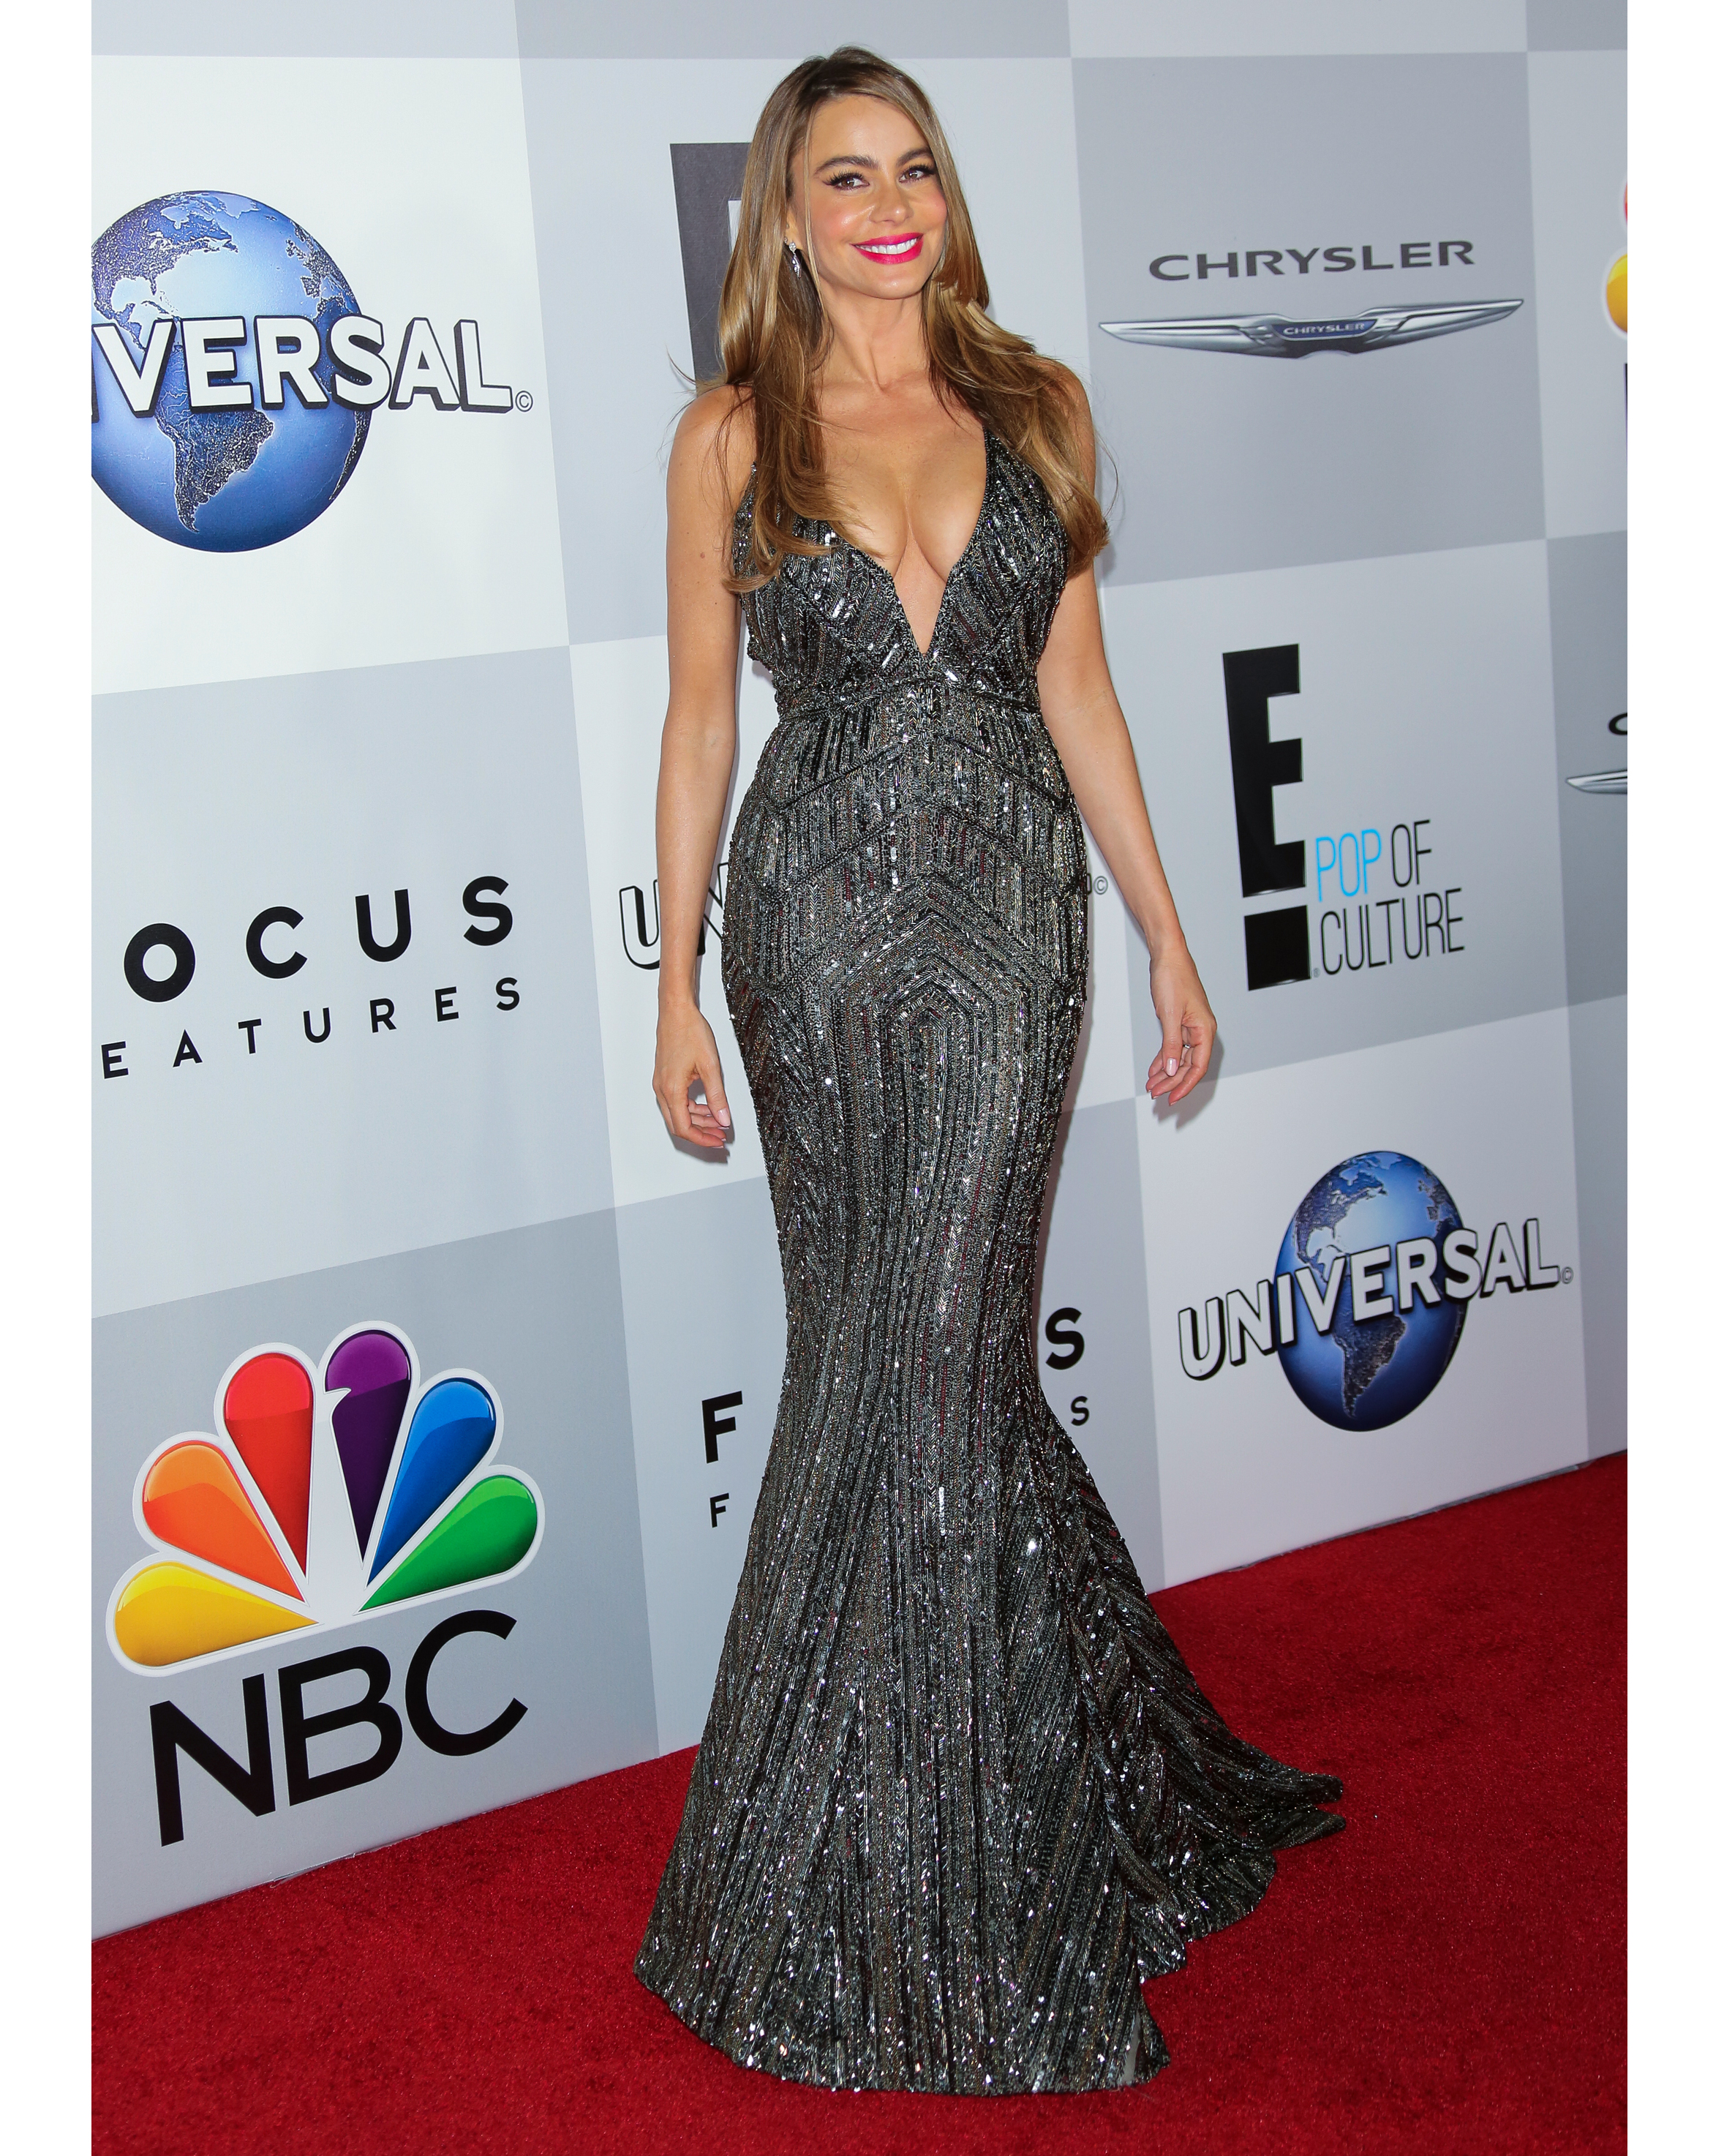 sofia-vergara-red-carpet-nbc-universal-golden-globes-after-party-zuhair-murad-black-sparkly-0815.jpg